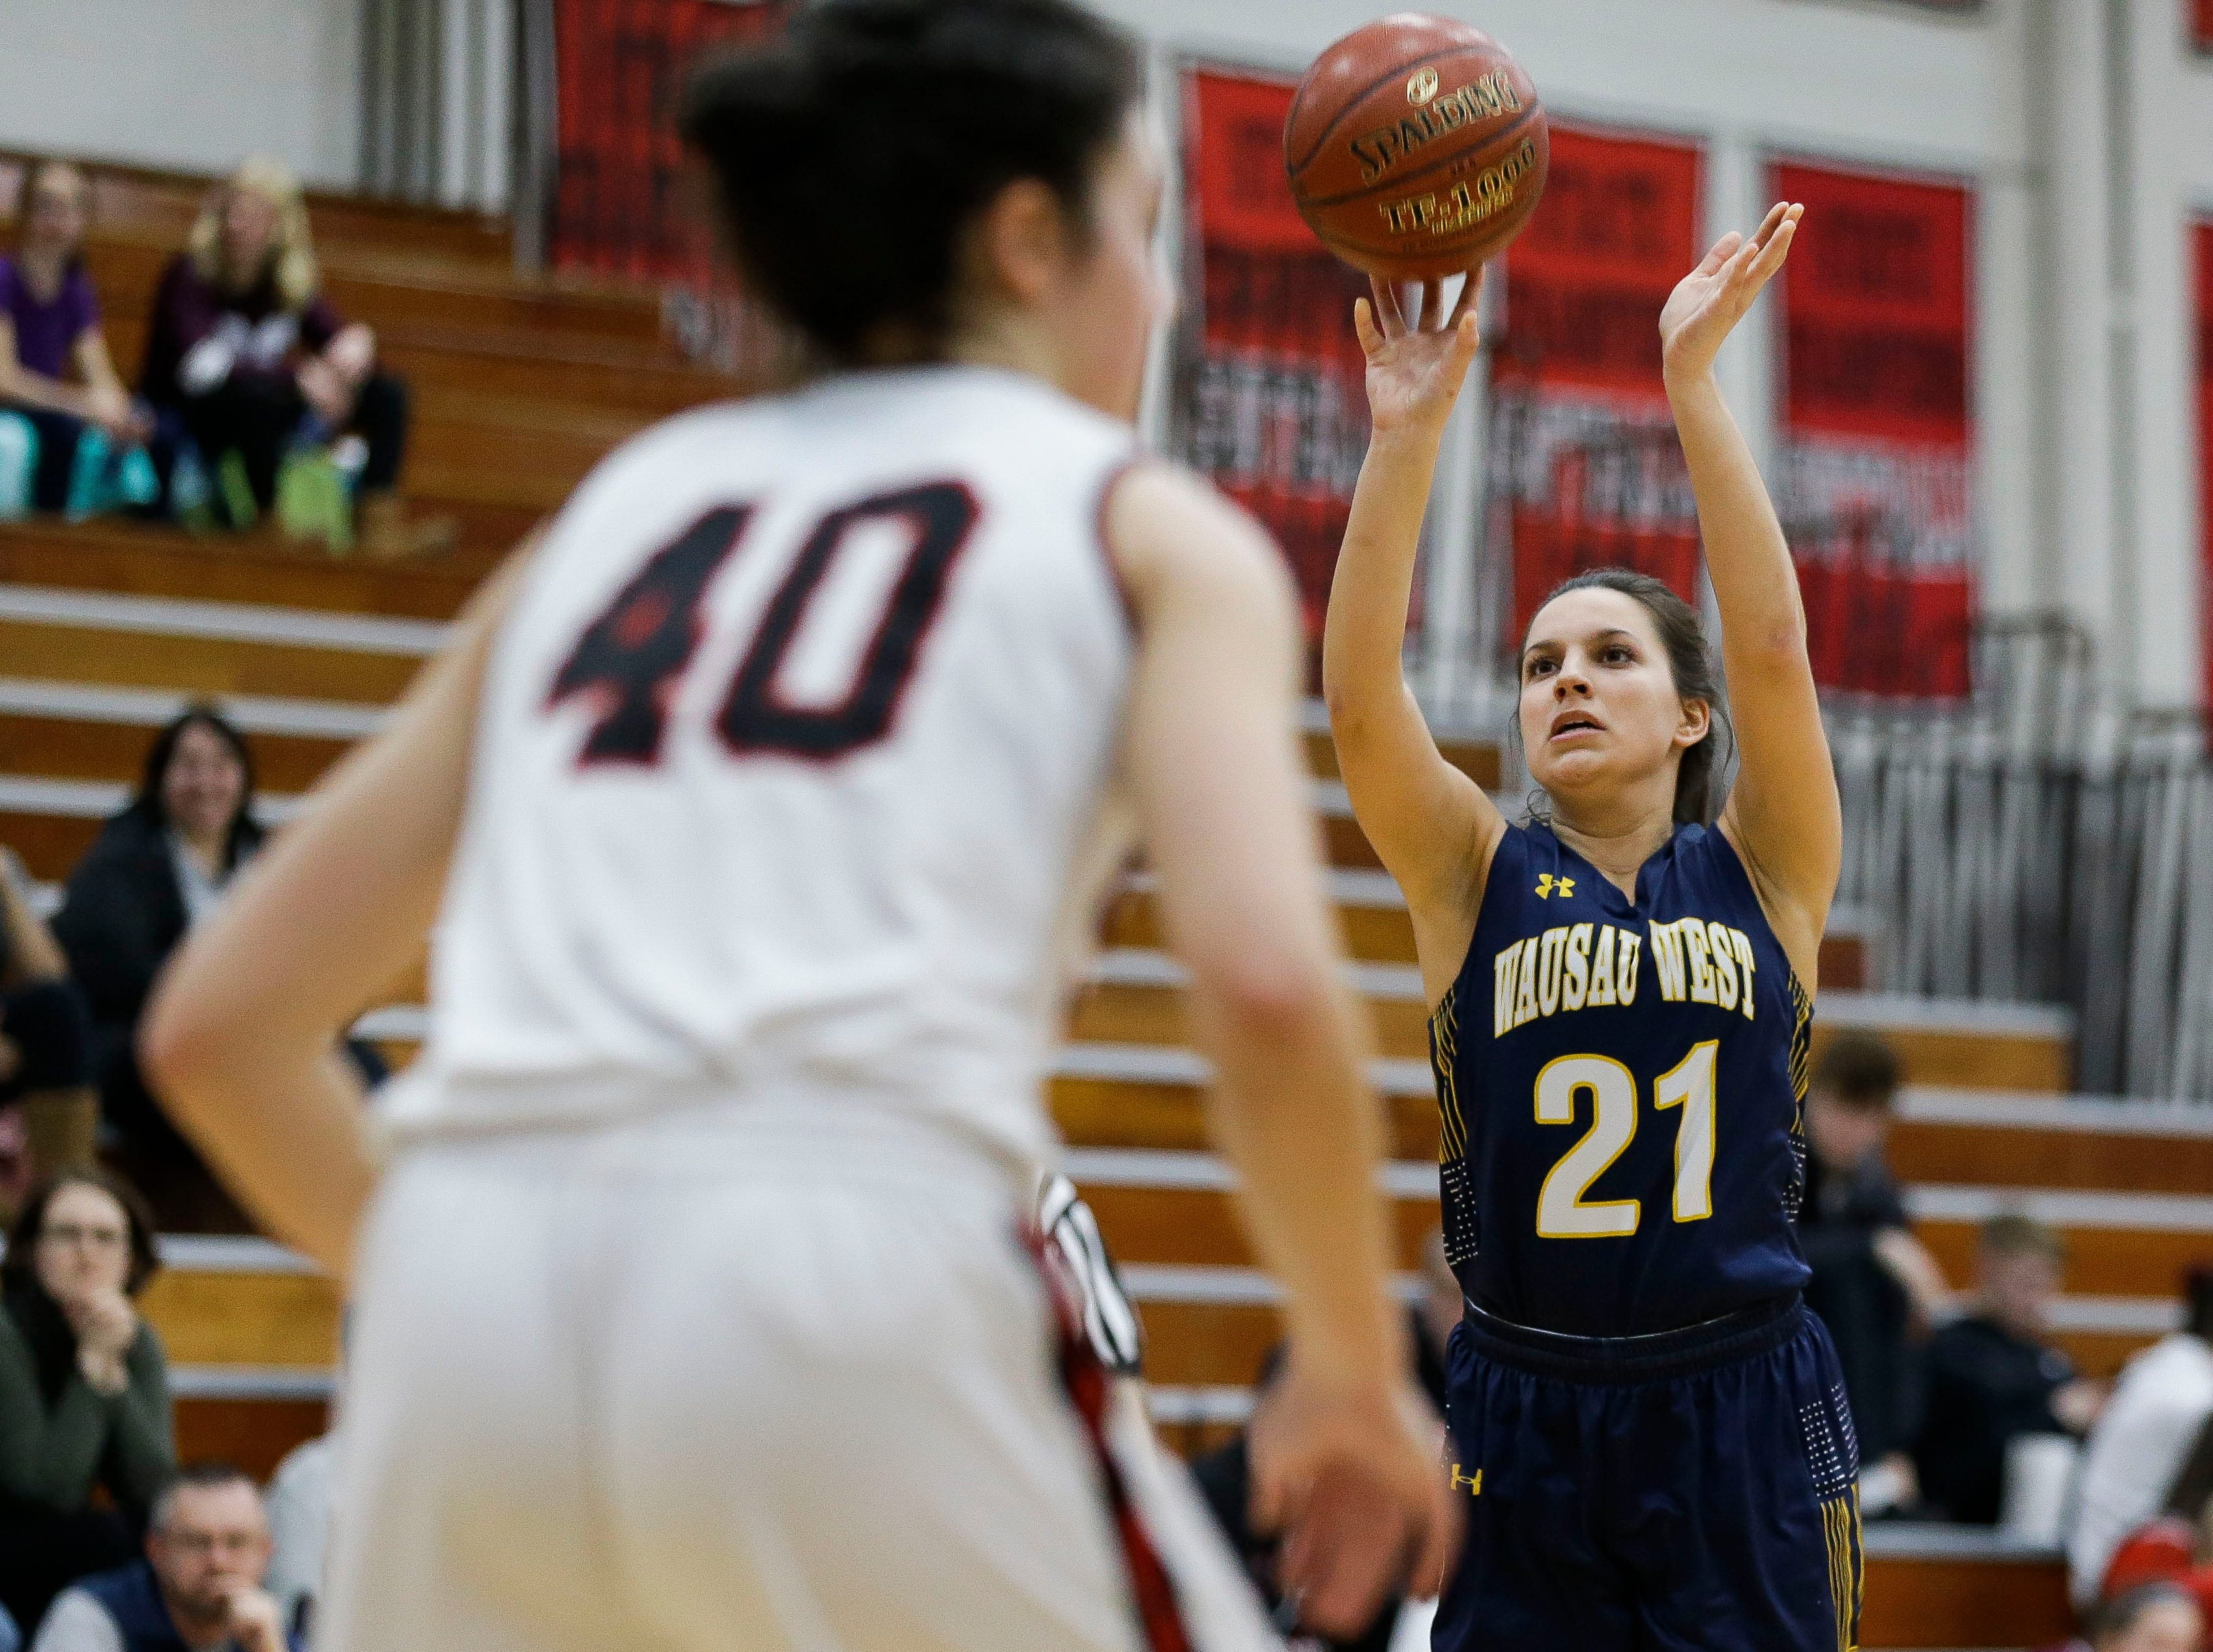 Wausau West's Shpresa Shabani (21) shoots a 3-pointer against SPASH on Thursday, February 14, 2019, at SPASH in Stevens Point, Wis.Tork Mason/USA TODAY NETWORK-Wisconsin